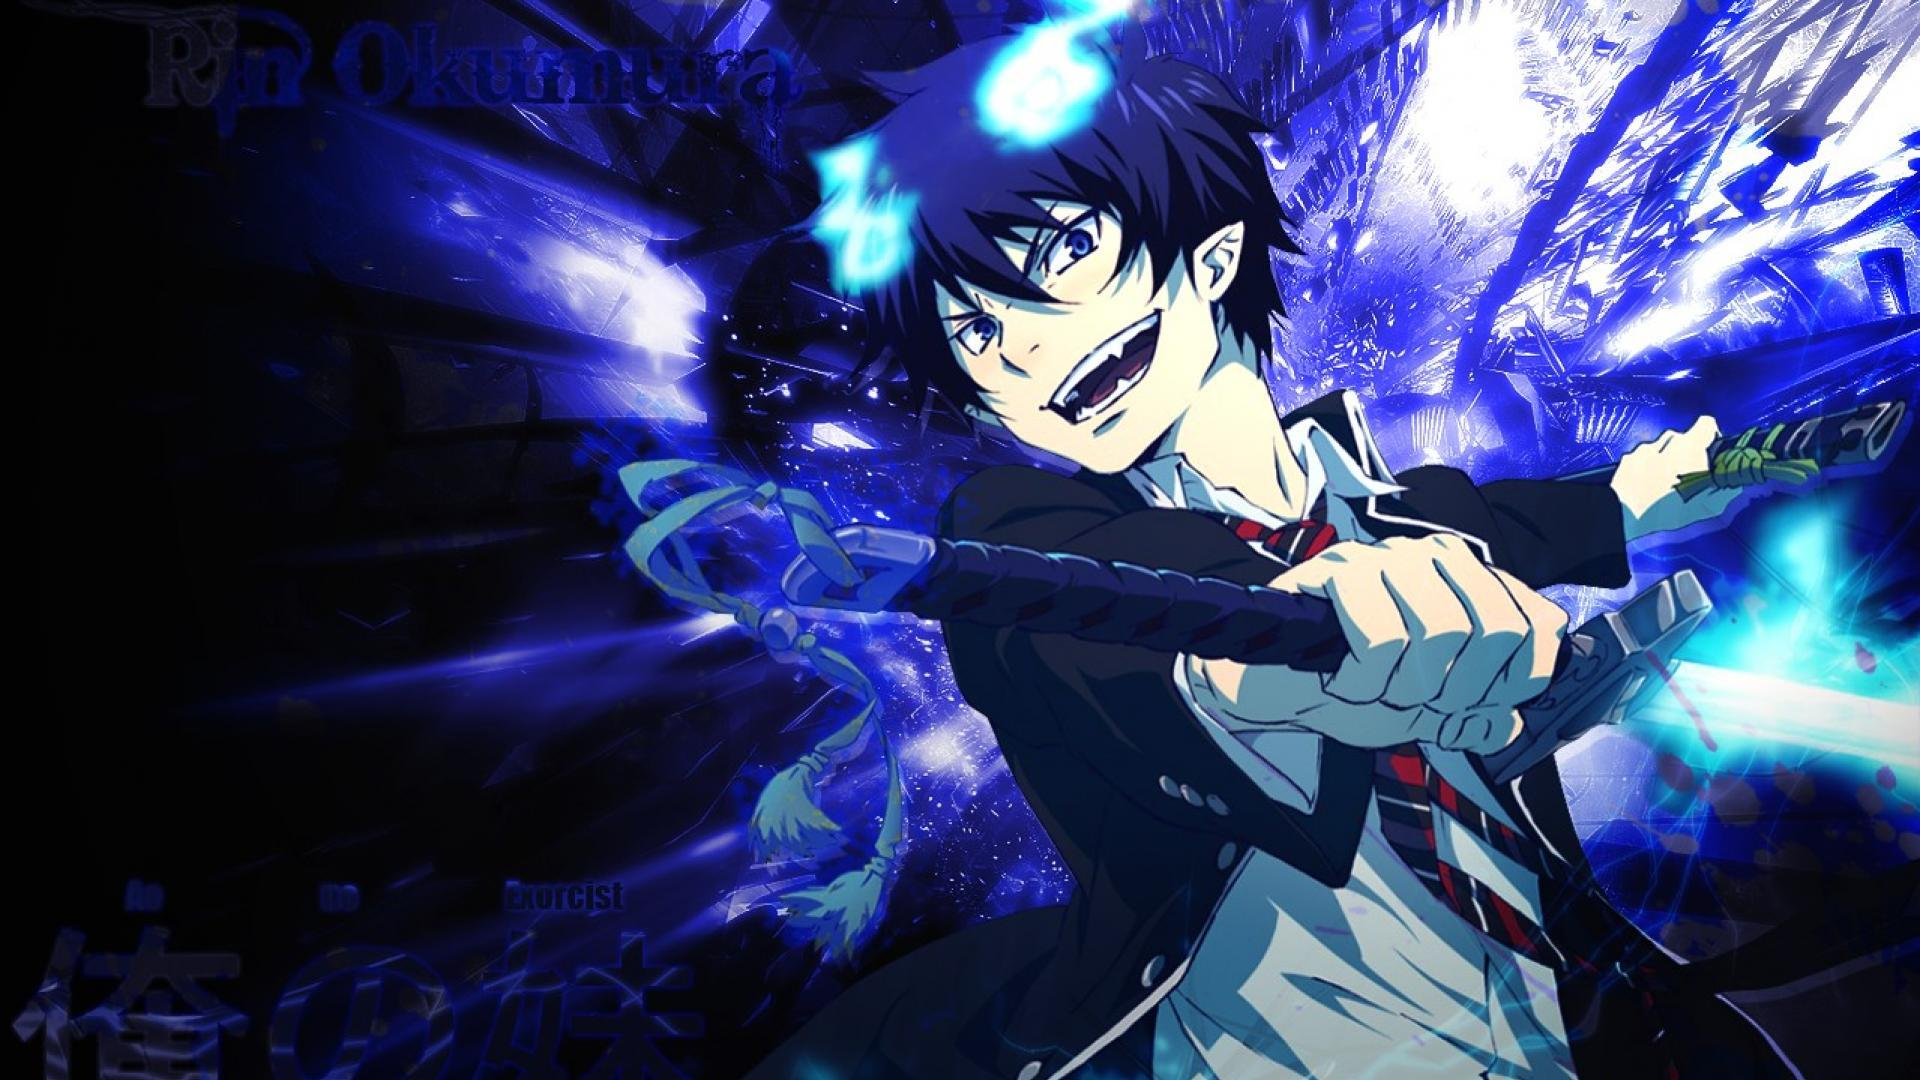 Blue Exorcist Wallpapers HD - Wallpaper Cave